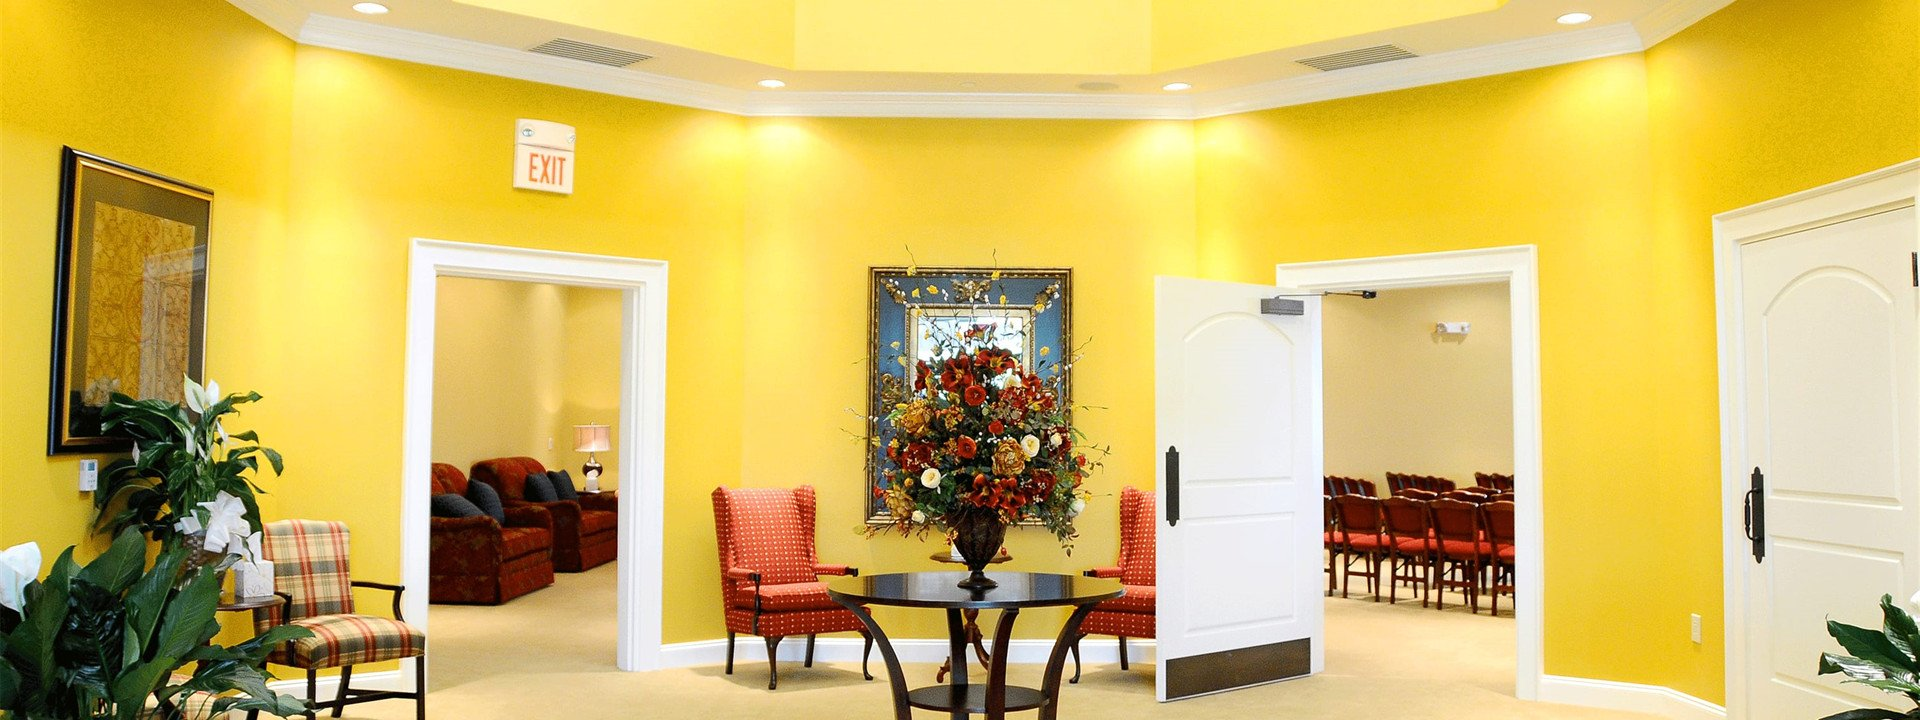 Our Funeral Home | Northlake Memorial Gardens